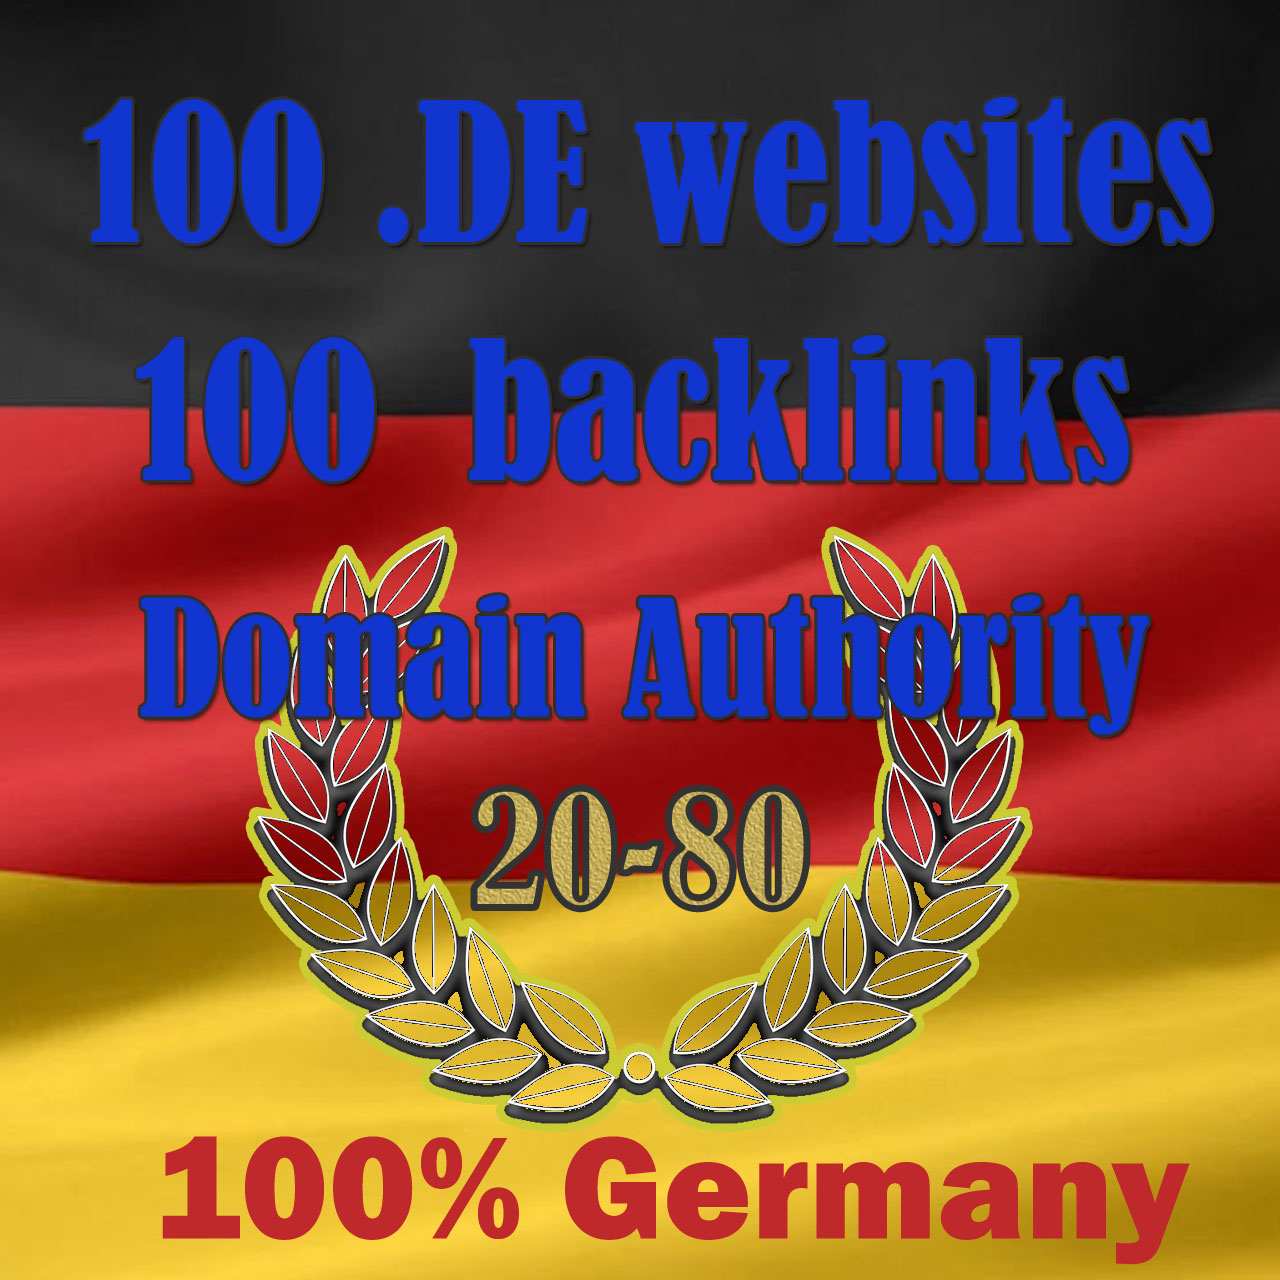 High DA German seo backlinks from 100 DE websites high authority